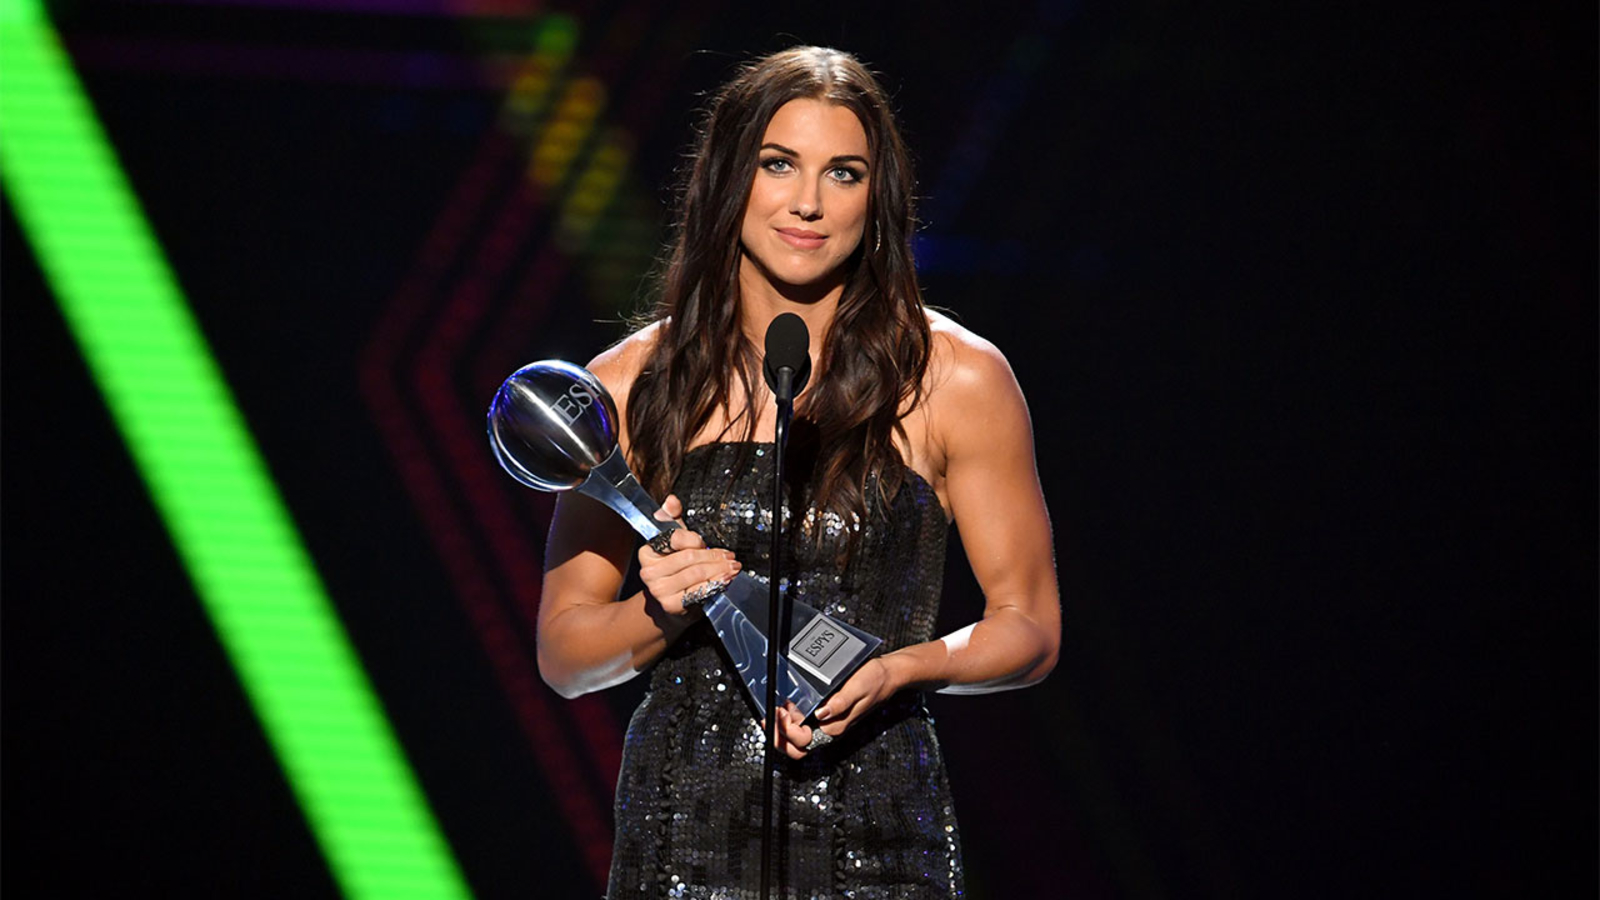 Alex Morgan at 2019 ESPYS: Women 'are more than just athletes'